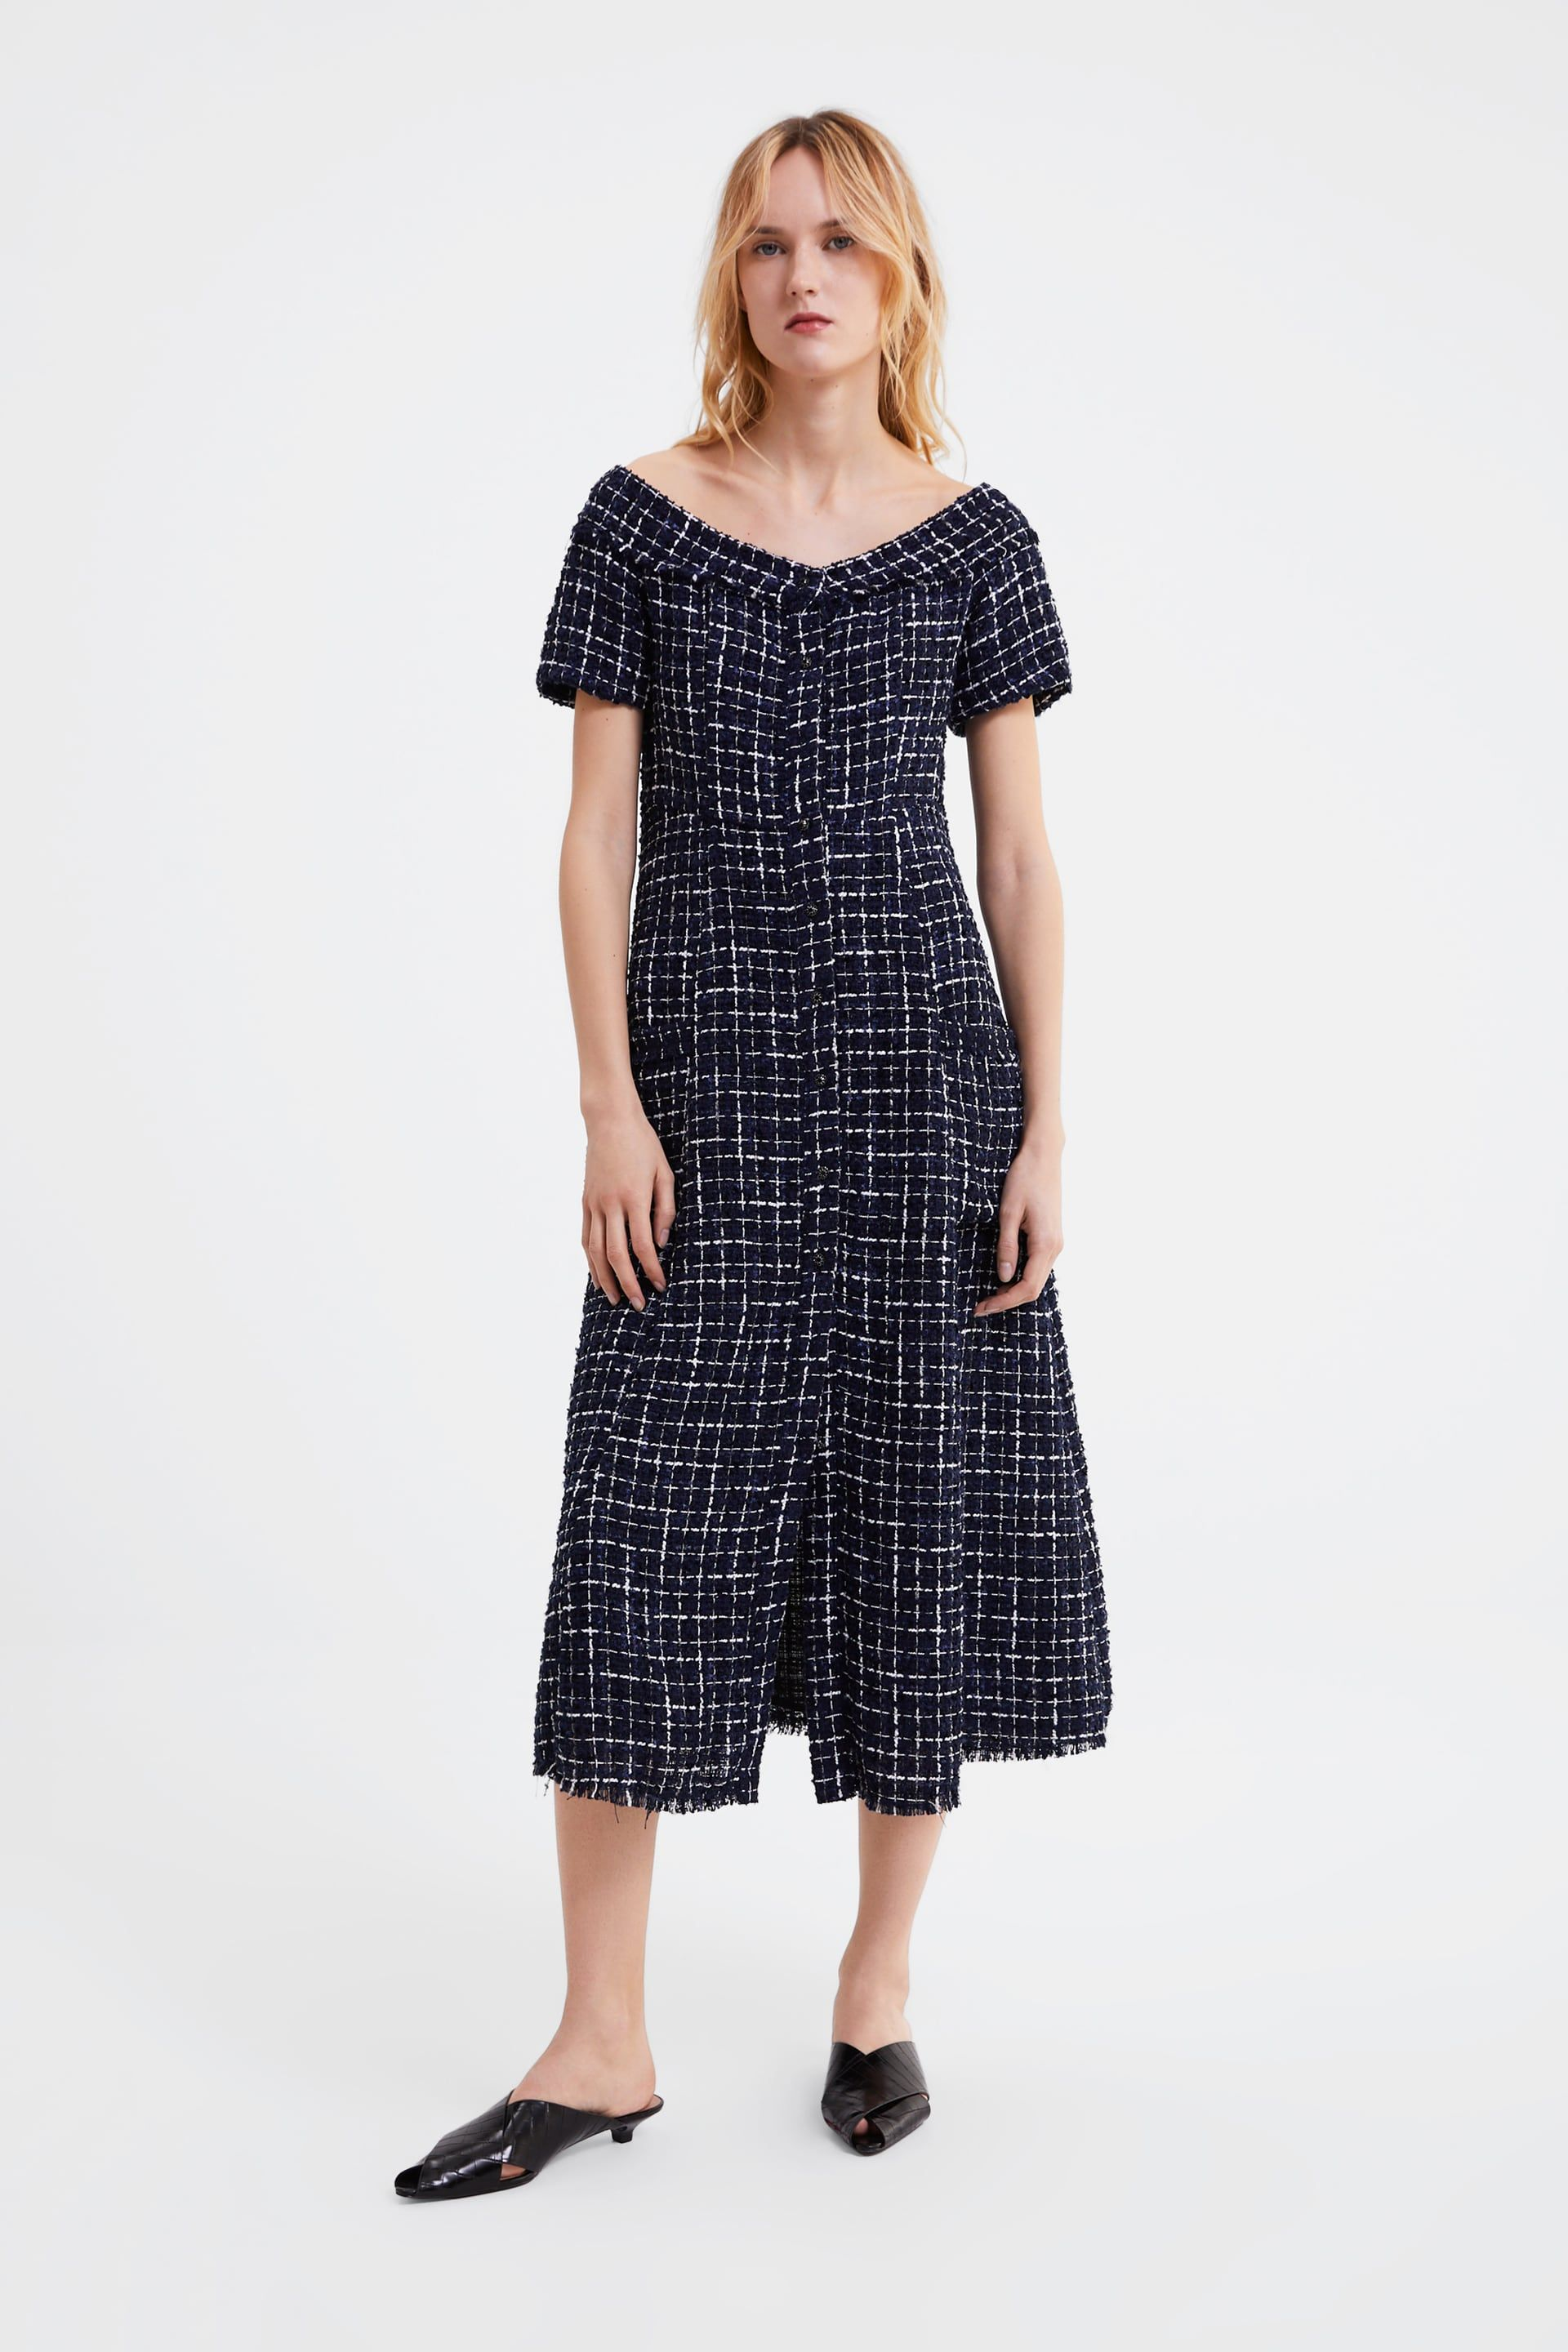 d8edb686 Tweed dress with gemstone buttons in 2019 | My Style | Tweed dress ...